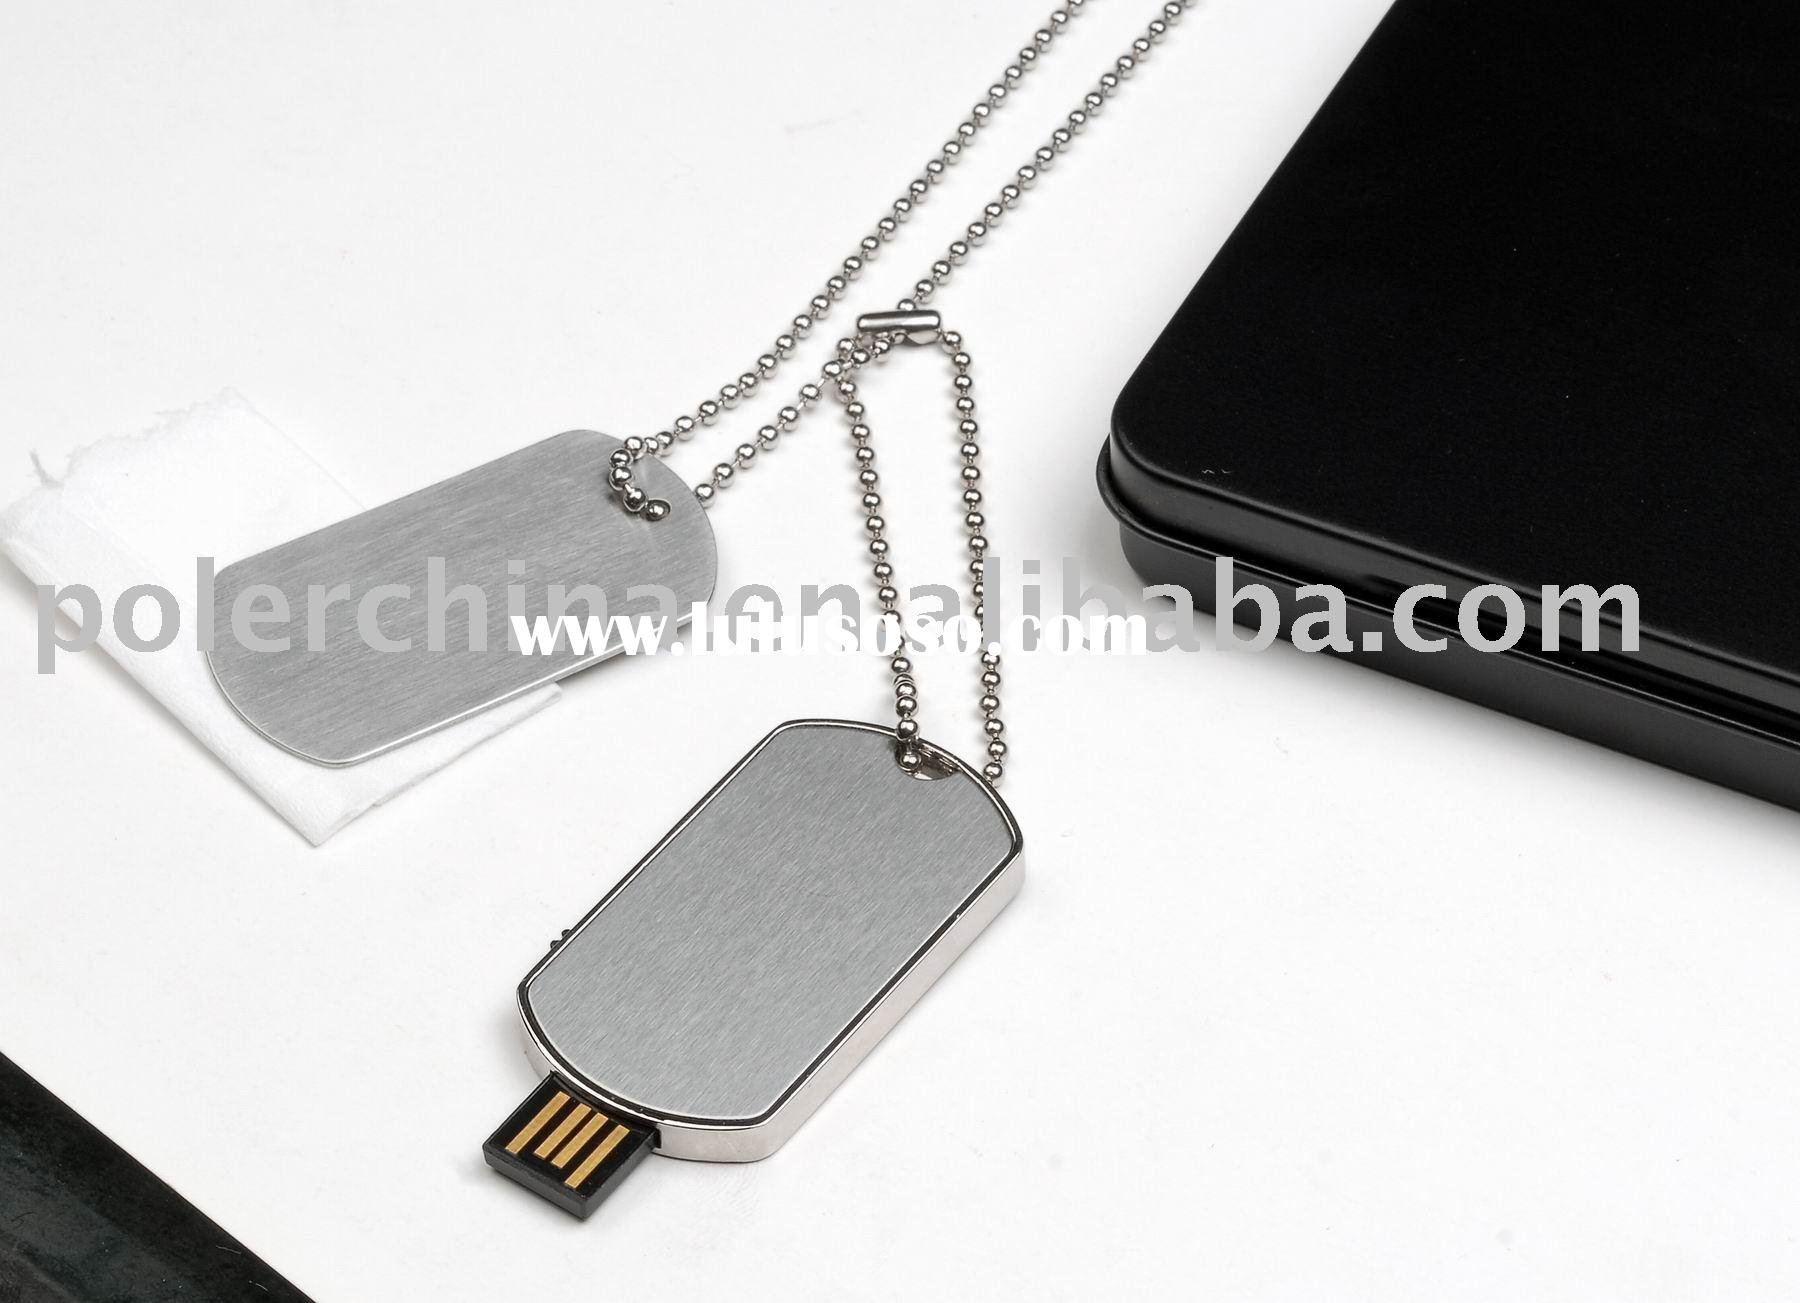 Dog Tag USB Flash Drive